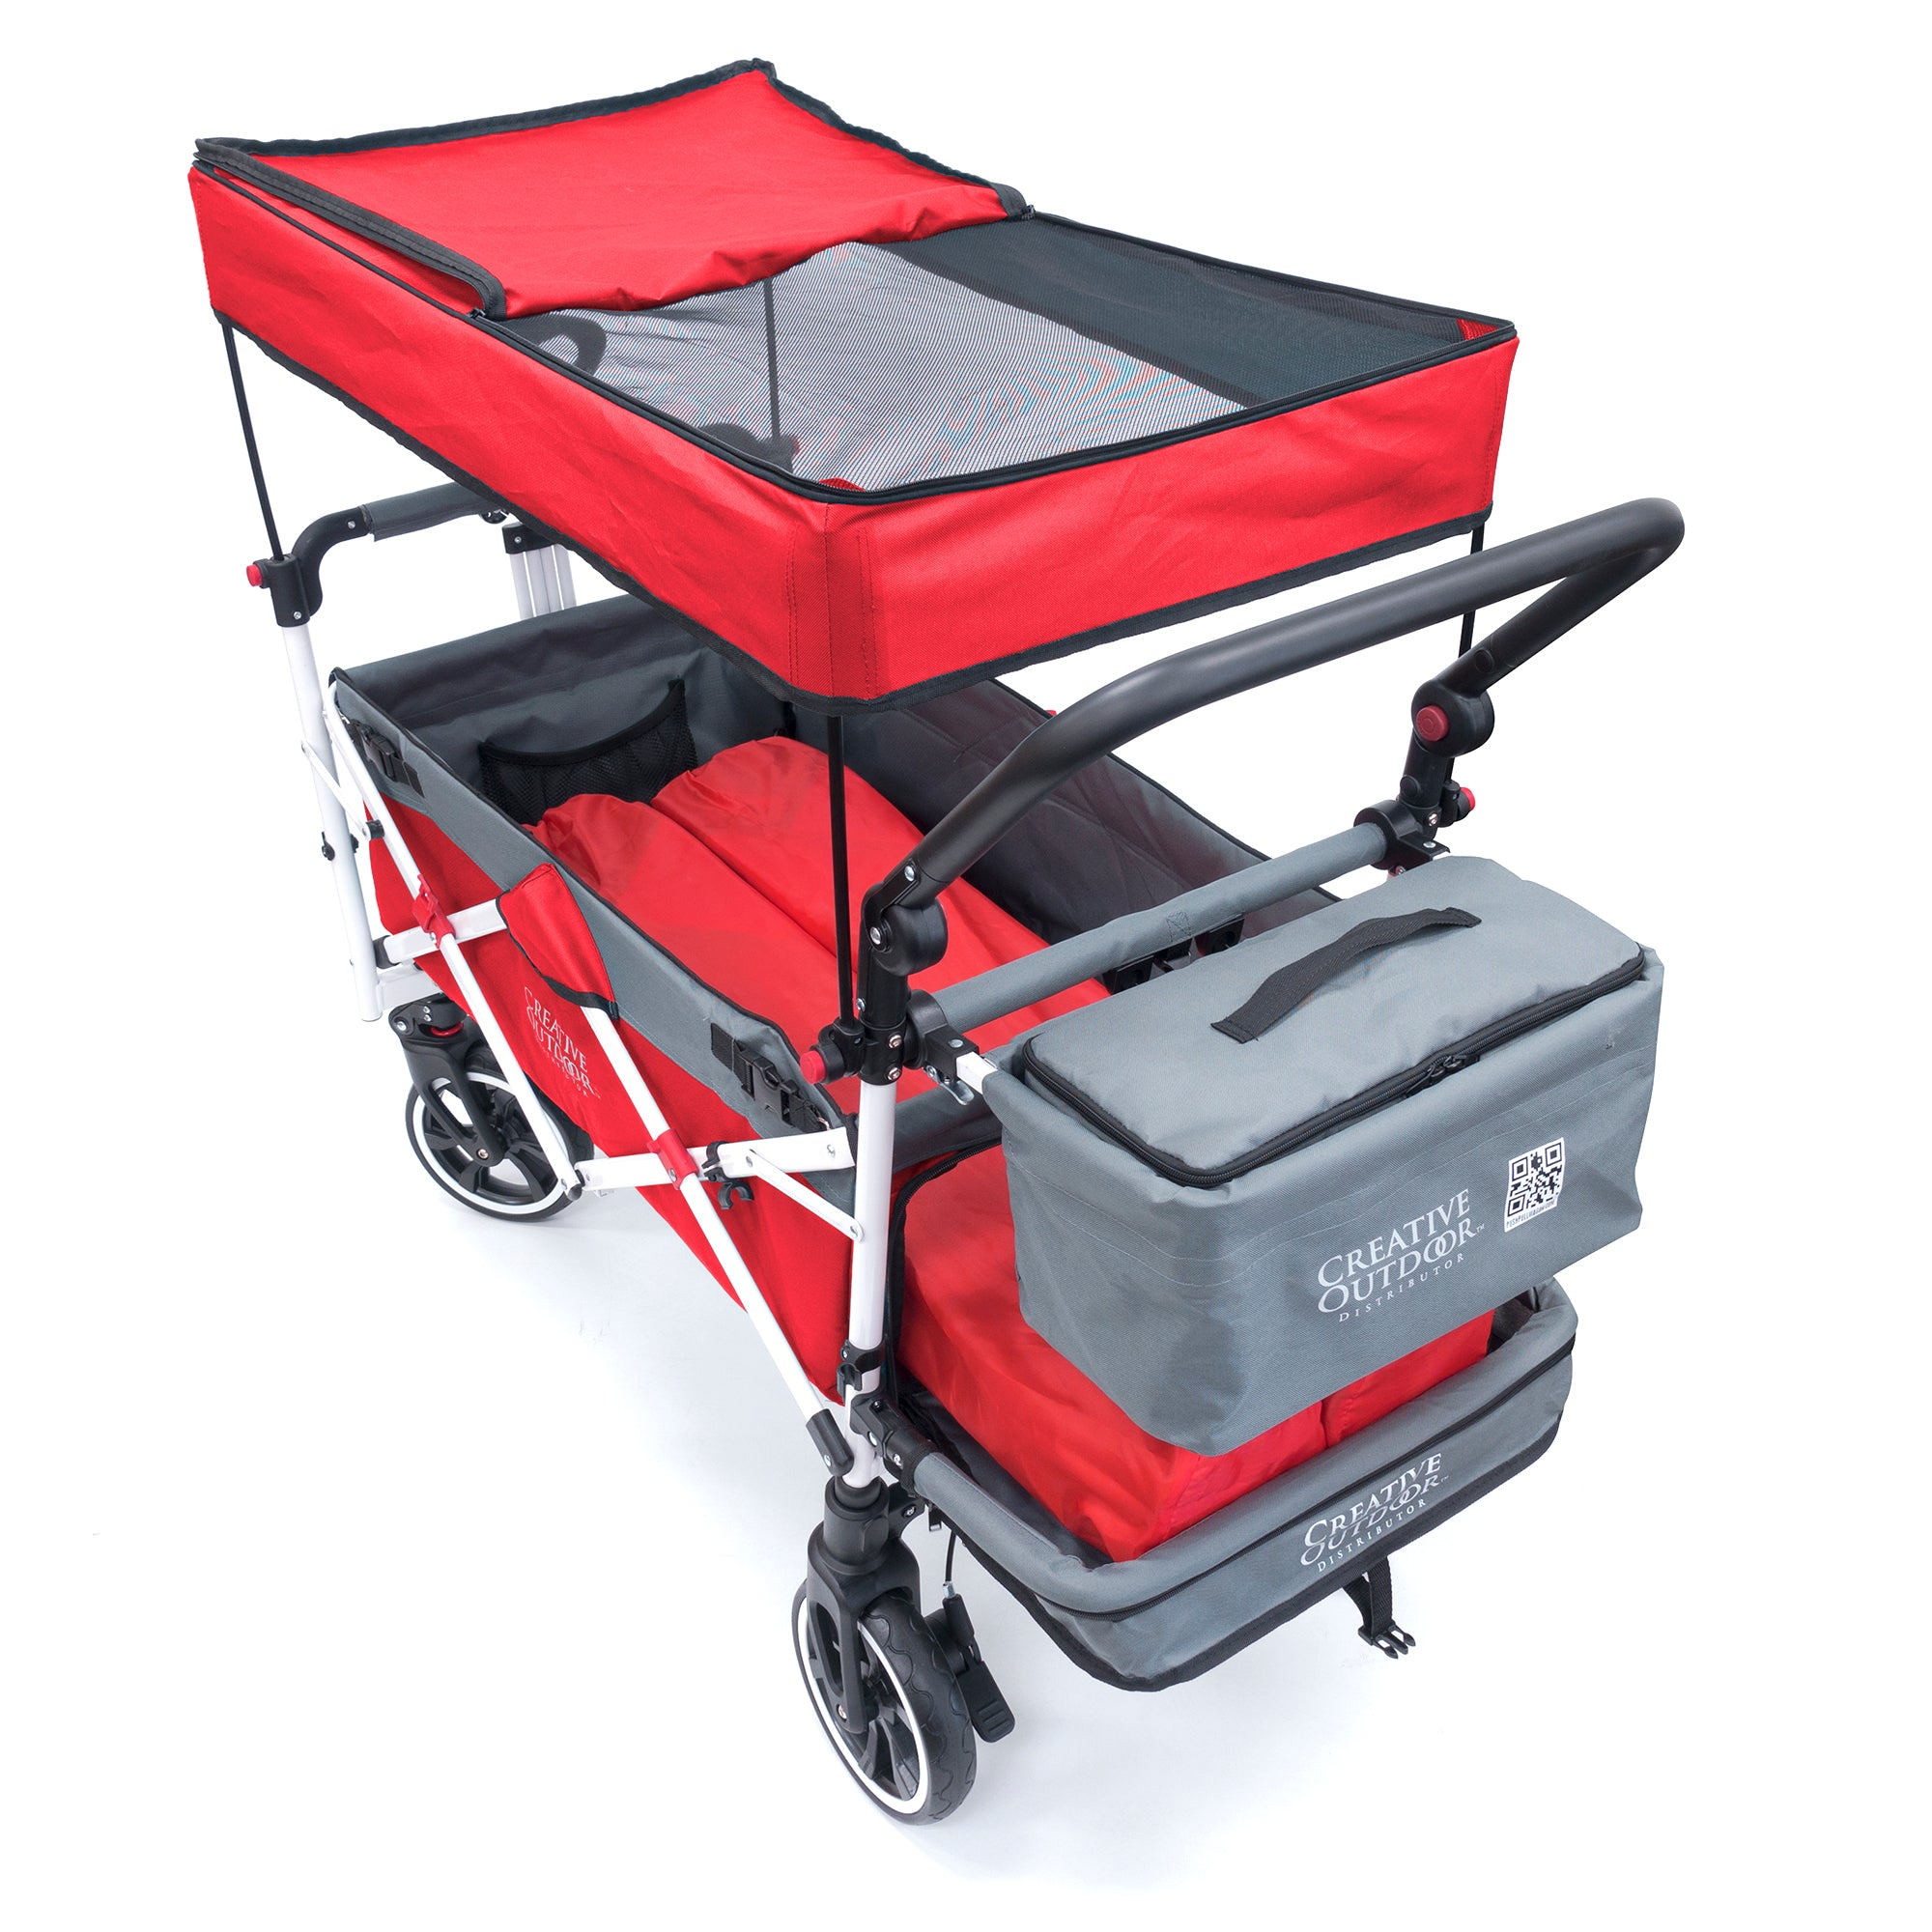 Push Pull TITANIUM SERIES Folding Wagon Stroller with Canopy | Red